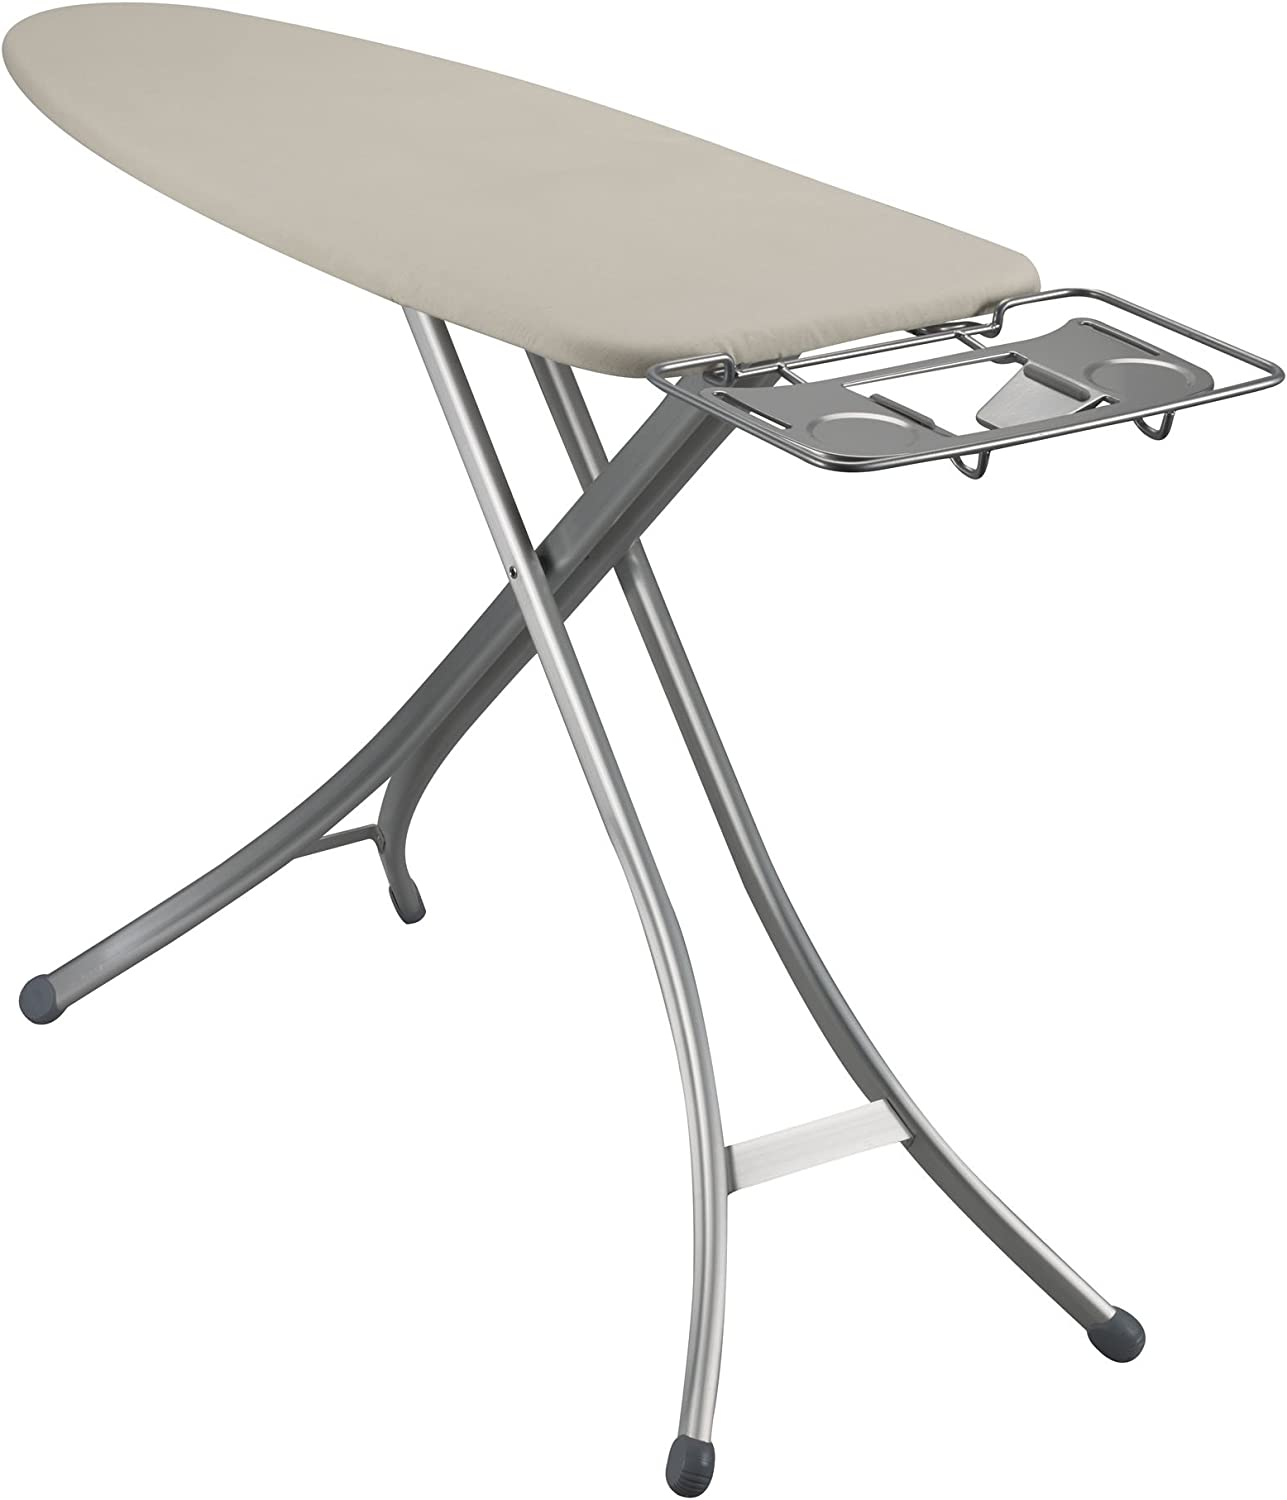 Household Essentials Fibertech Mega Top 4 Leg Aluminum Ironing Board With Natural Cotton Cover Amazon Ca Home Kitchen